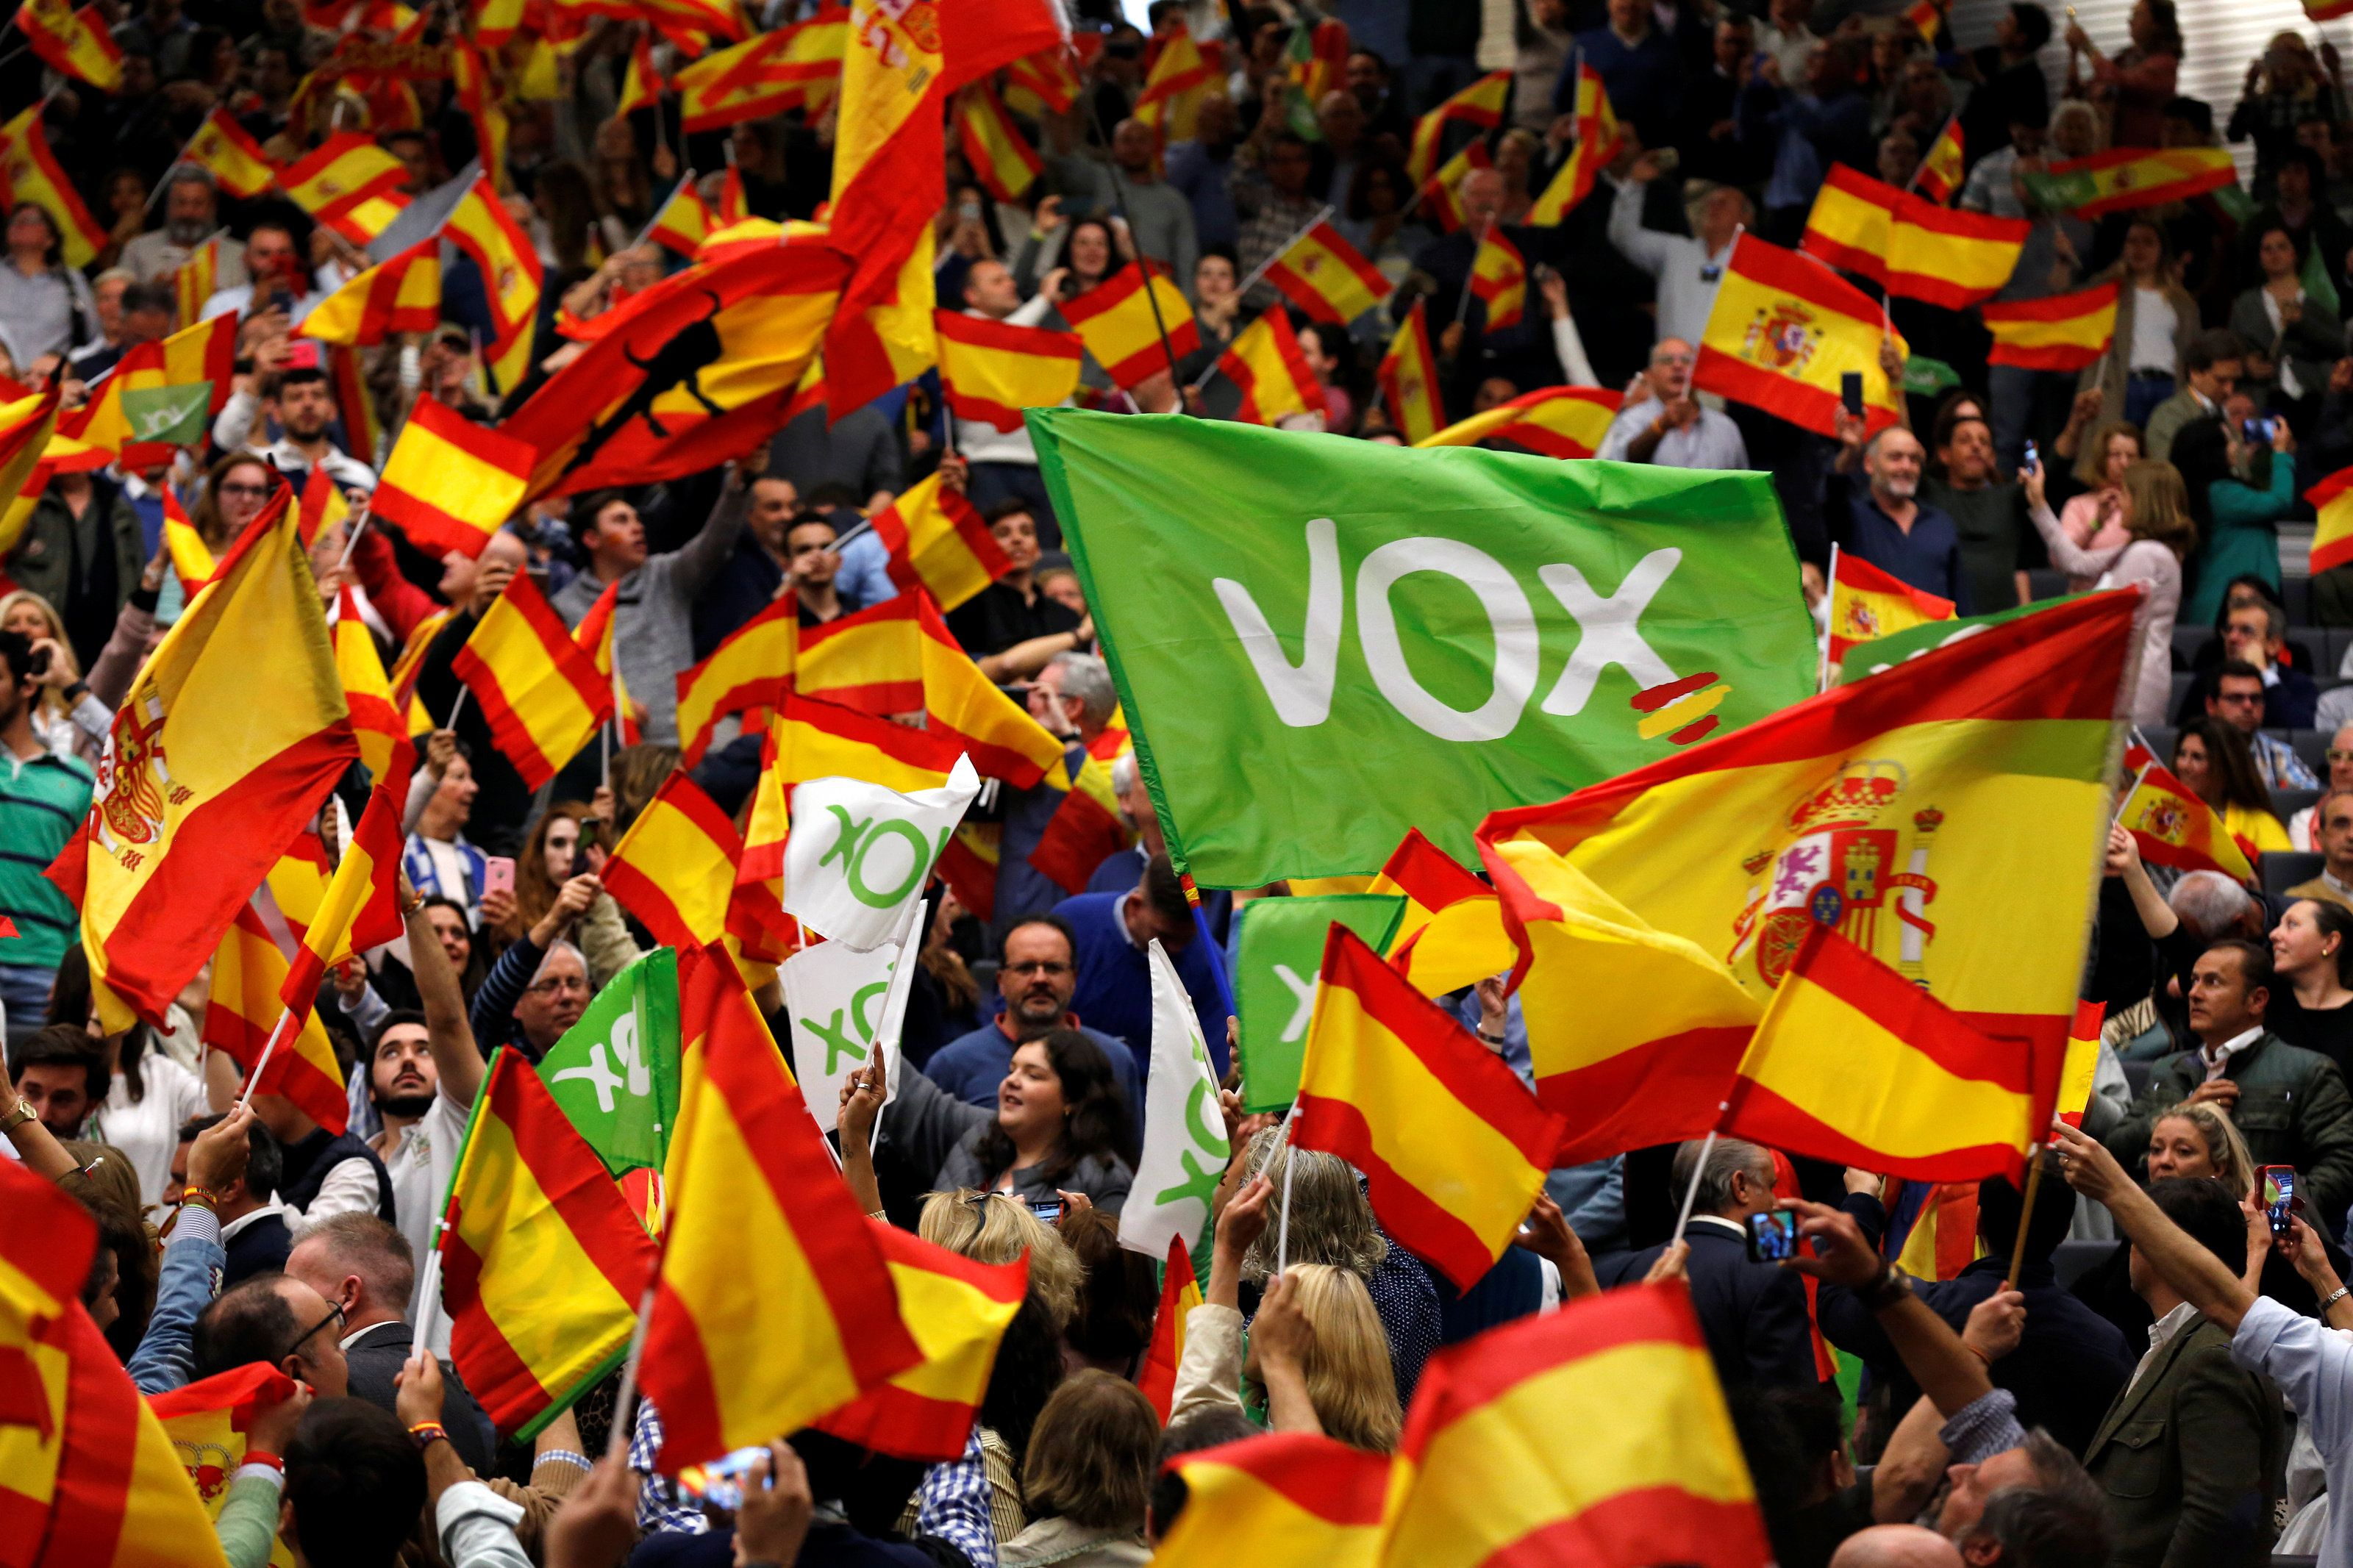 What We're Watching: Spain's far right surge